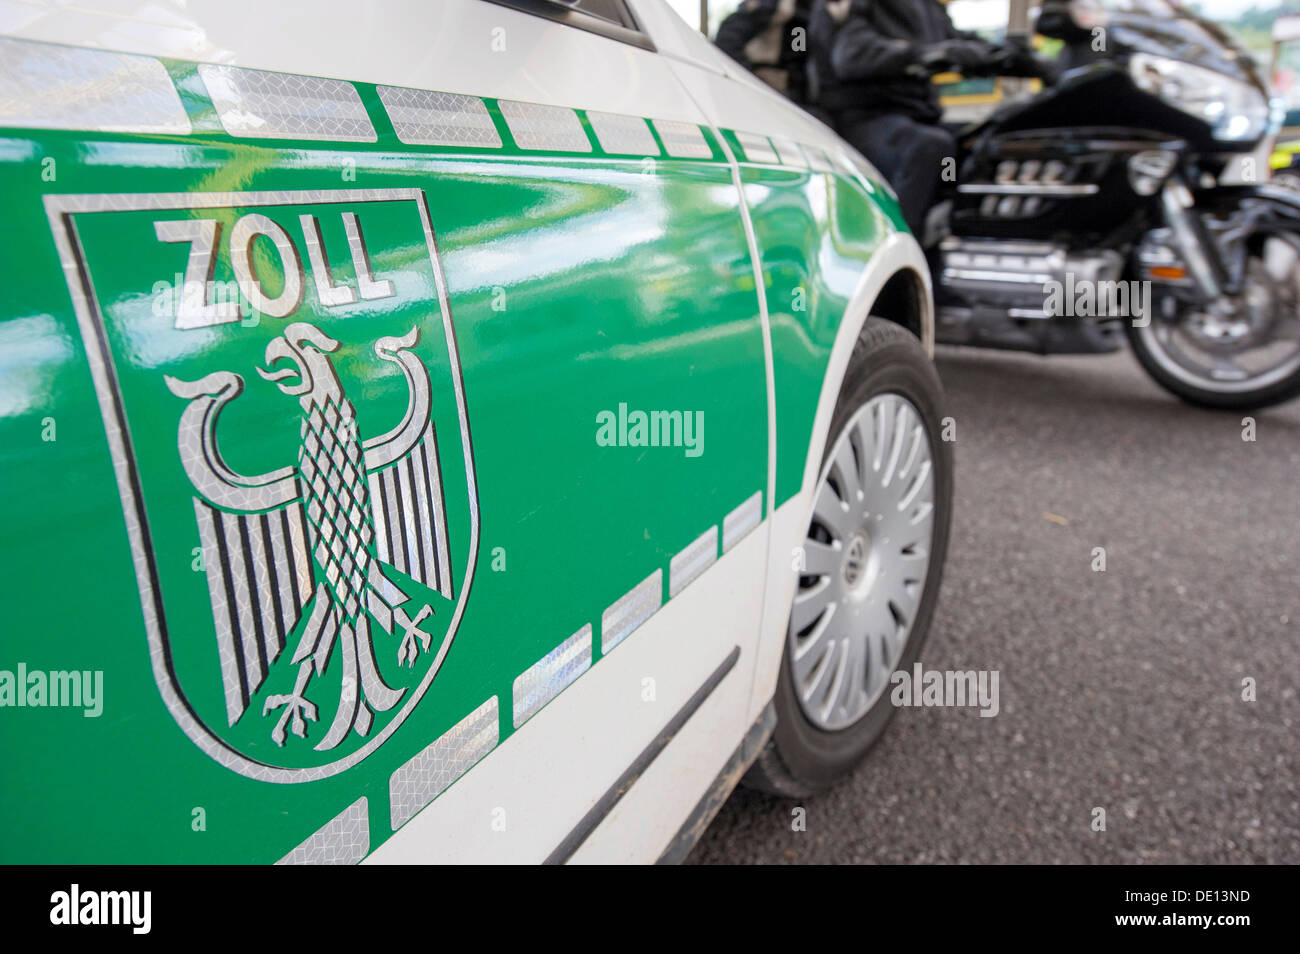 Customs vehicle, Singen central customs office, Bietingen customs office, border crossing between Germany and Switzerland - Stock Image